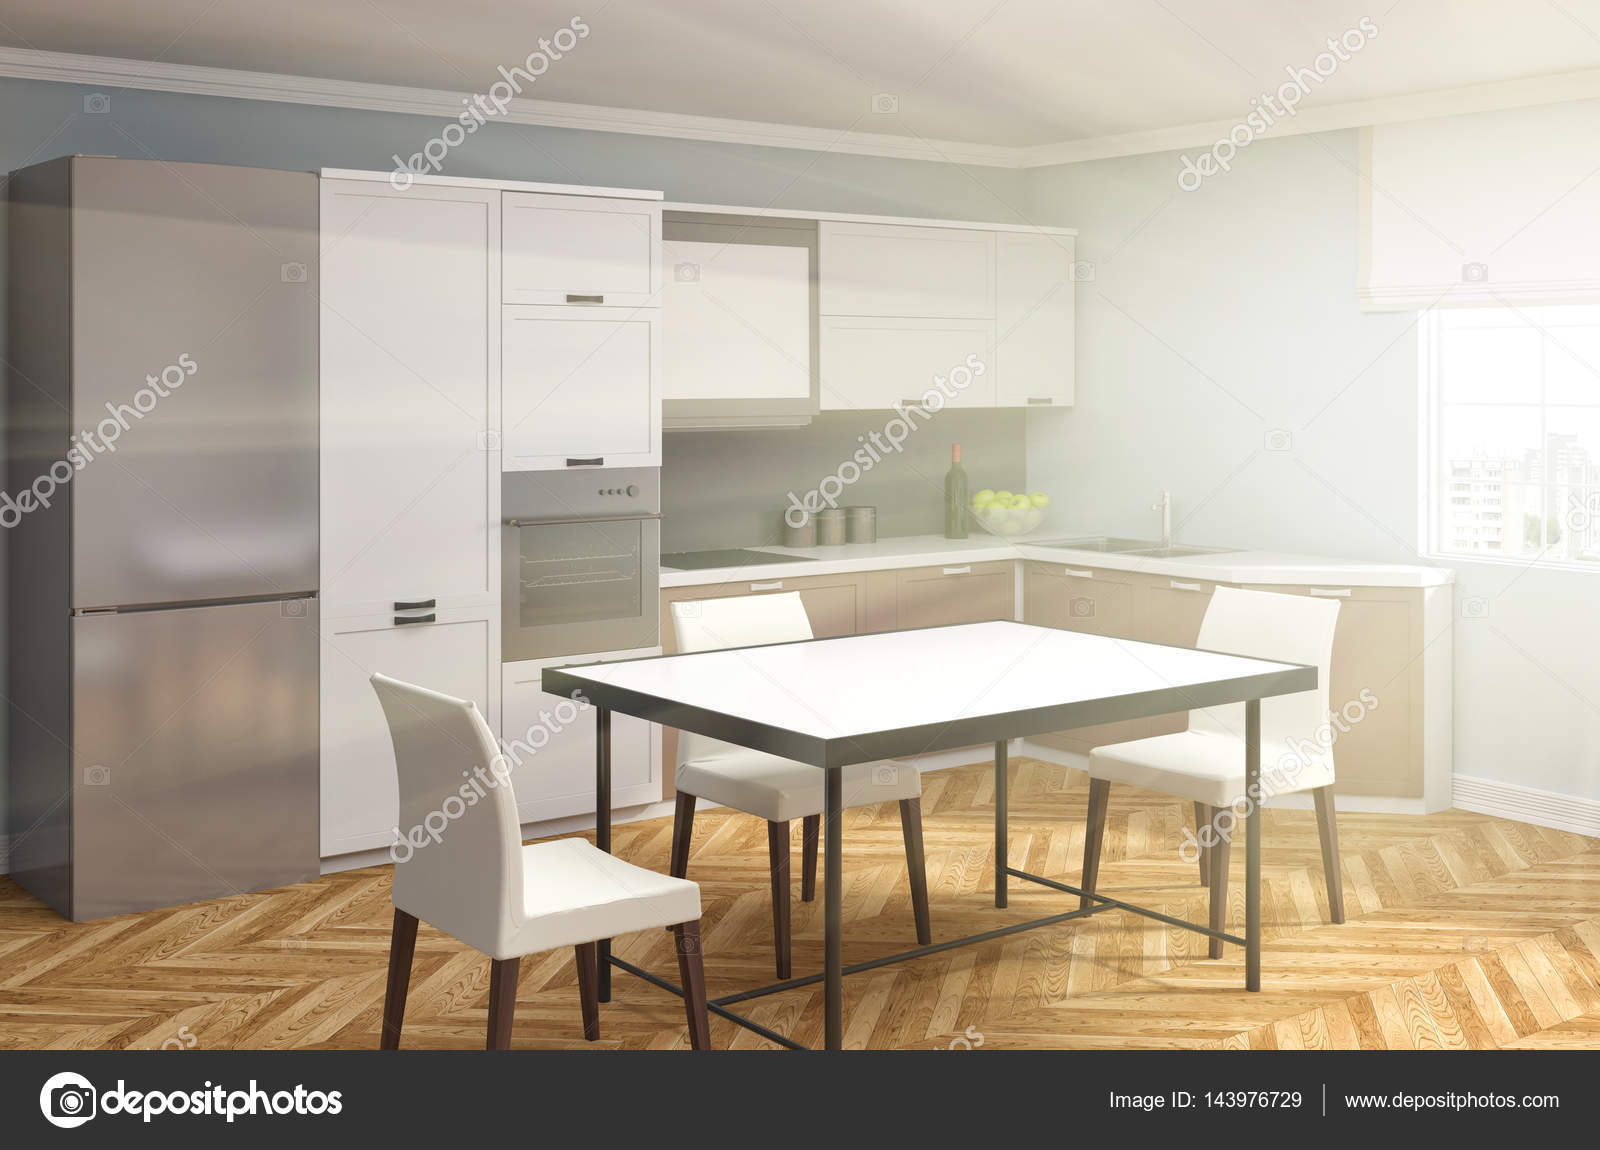 Küche Interieur. 3D-Illustration — Stockfoto © StockerNumber2 #143976729